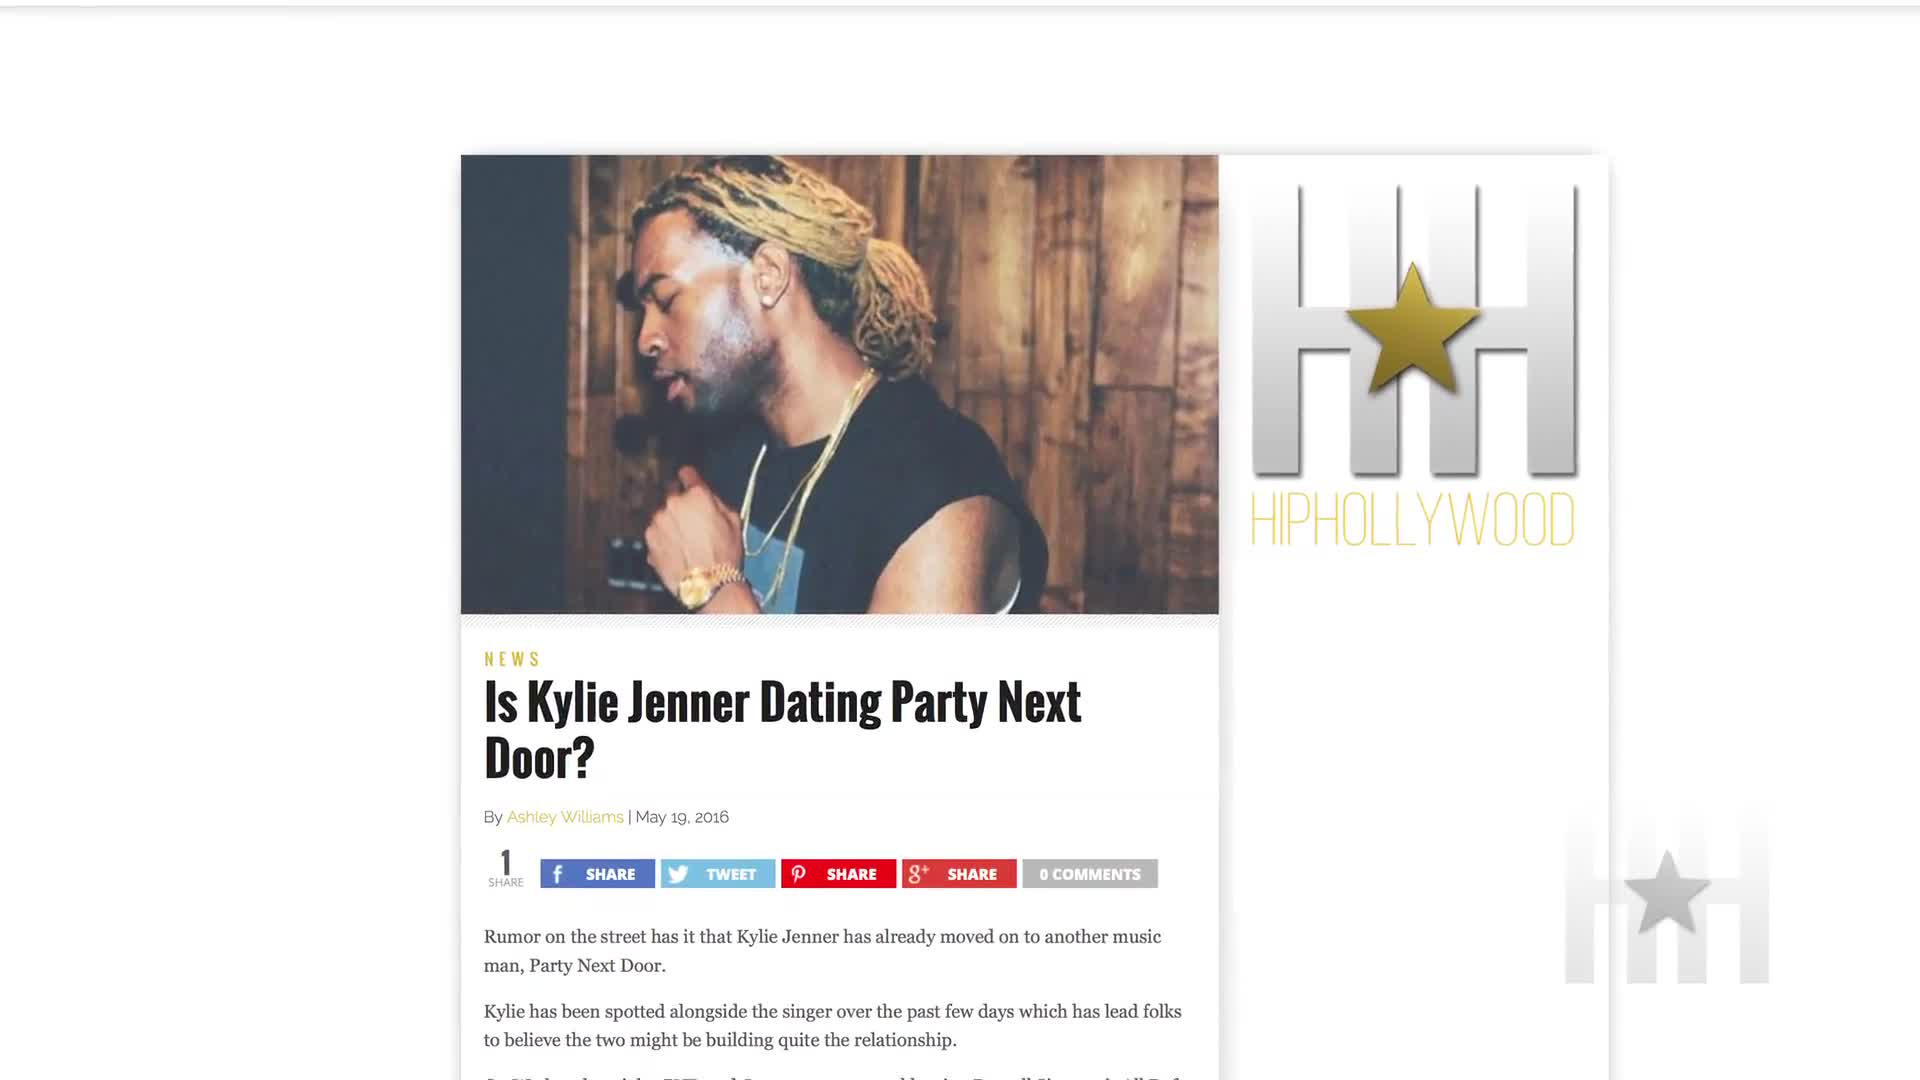 Trending: Saint West Surfaces, Tyga, Kylie Rumors, Nick Young's Emotional Video - HipHollywood.com